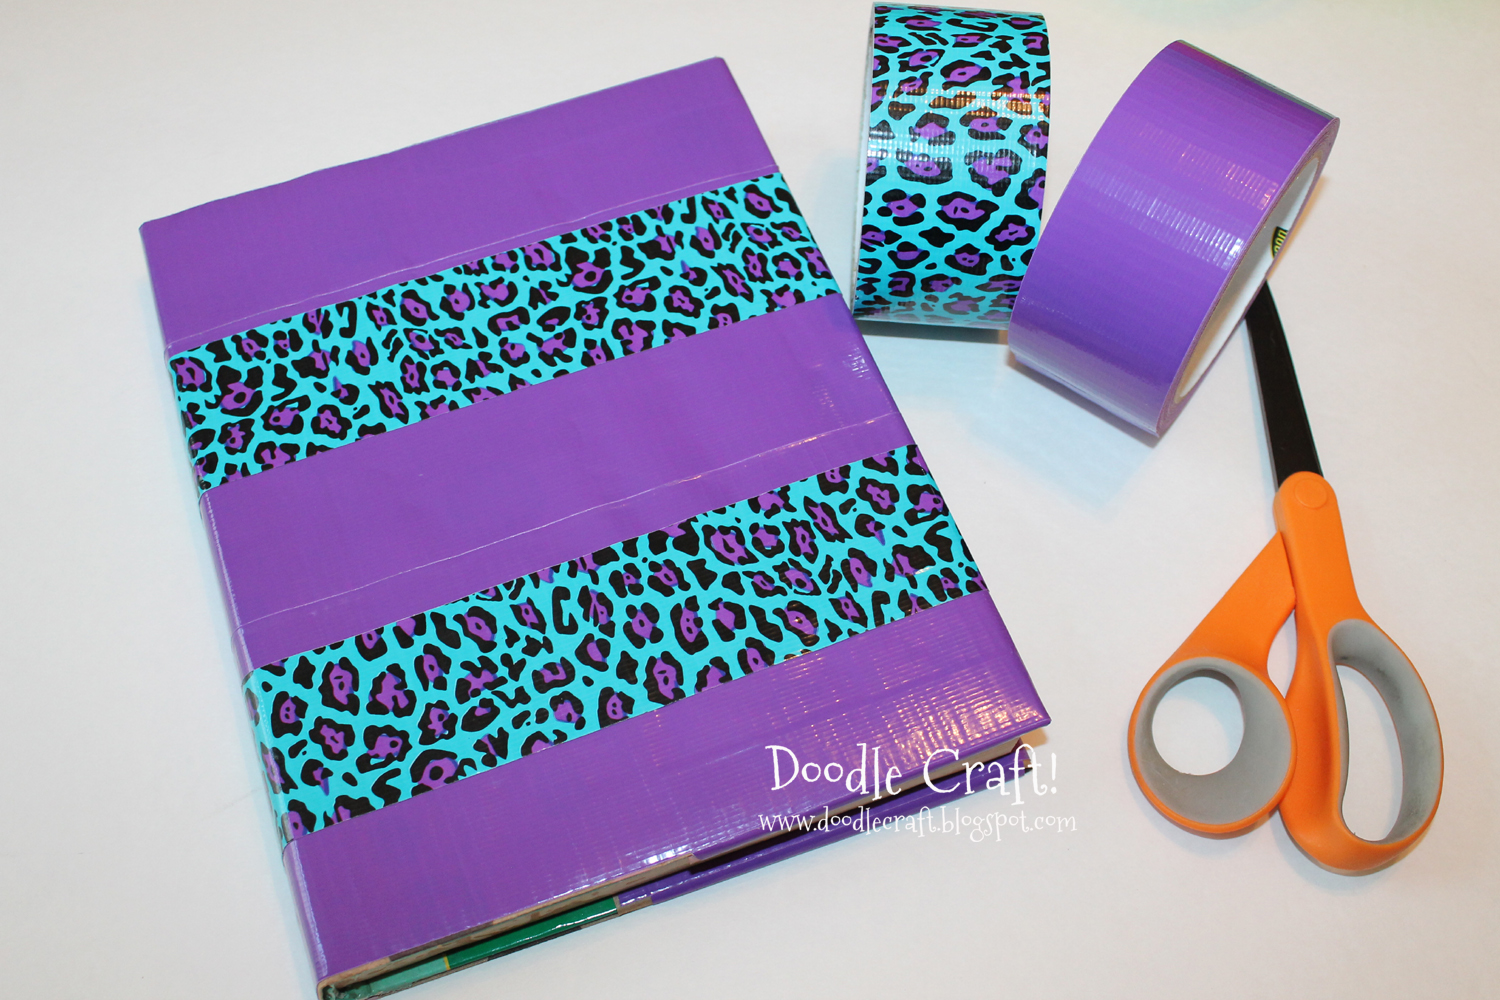 Book Cover Craft S : Doodlecraft how to cover a textbook with duct tape